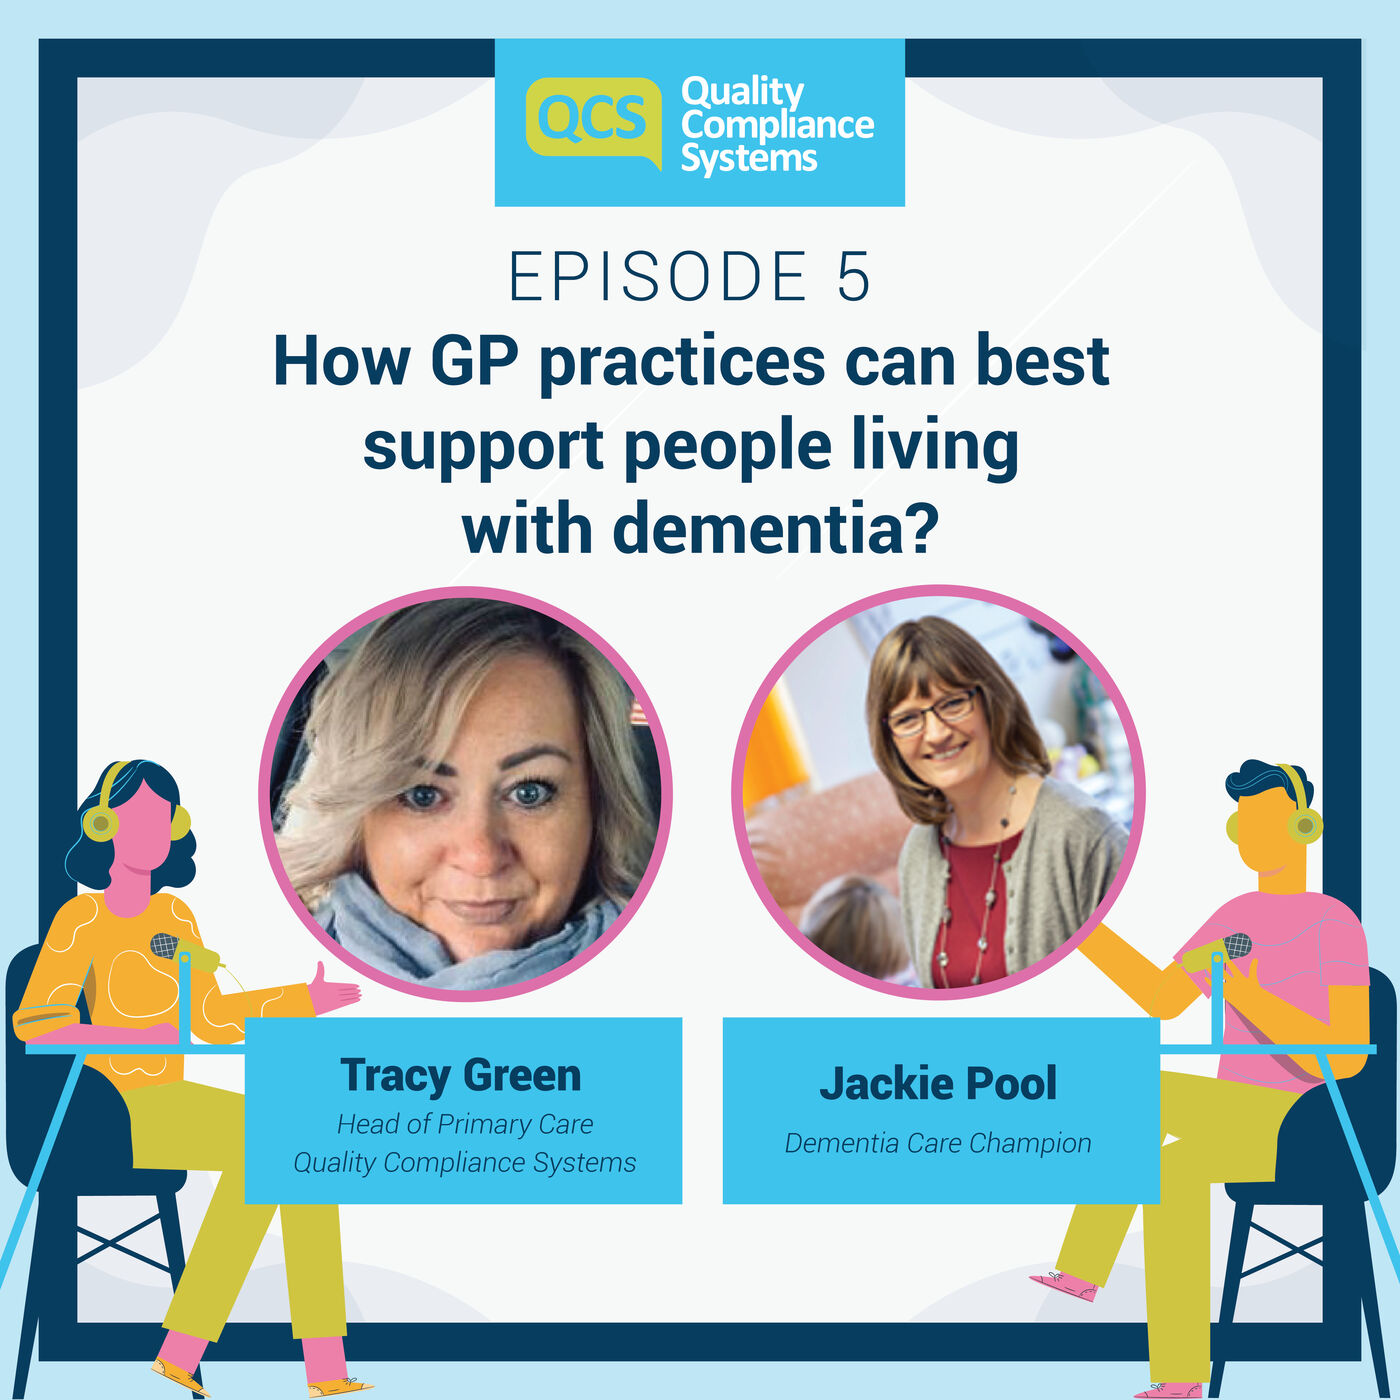 How GP practices can best support people living with dementia?